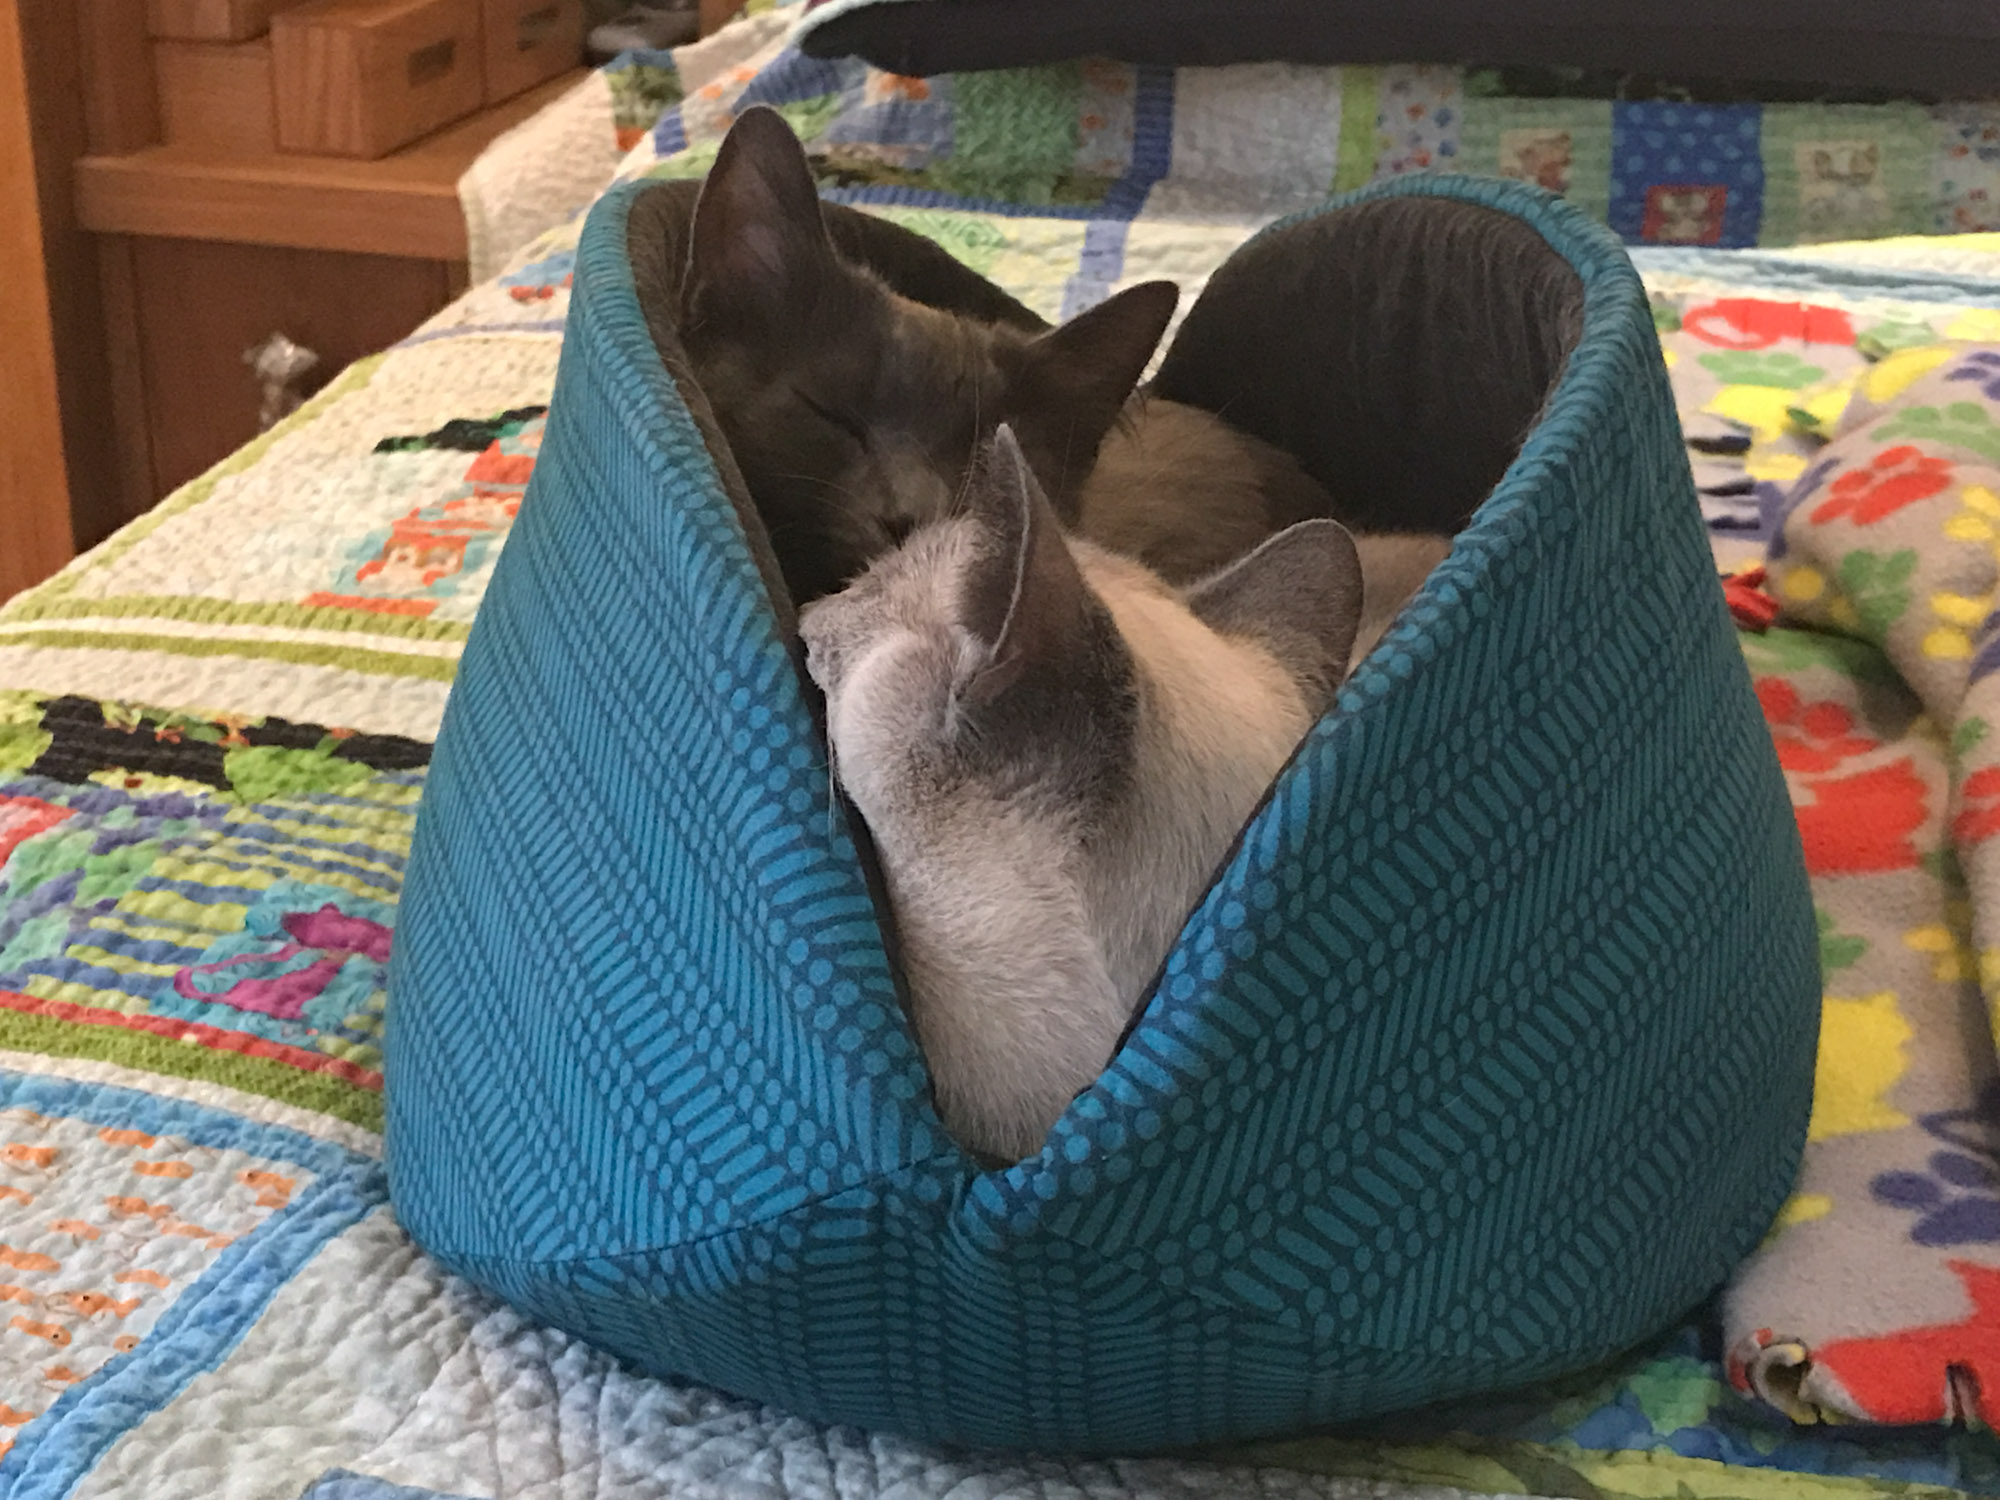 two cats snuggling in small cat bed